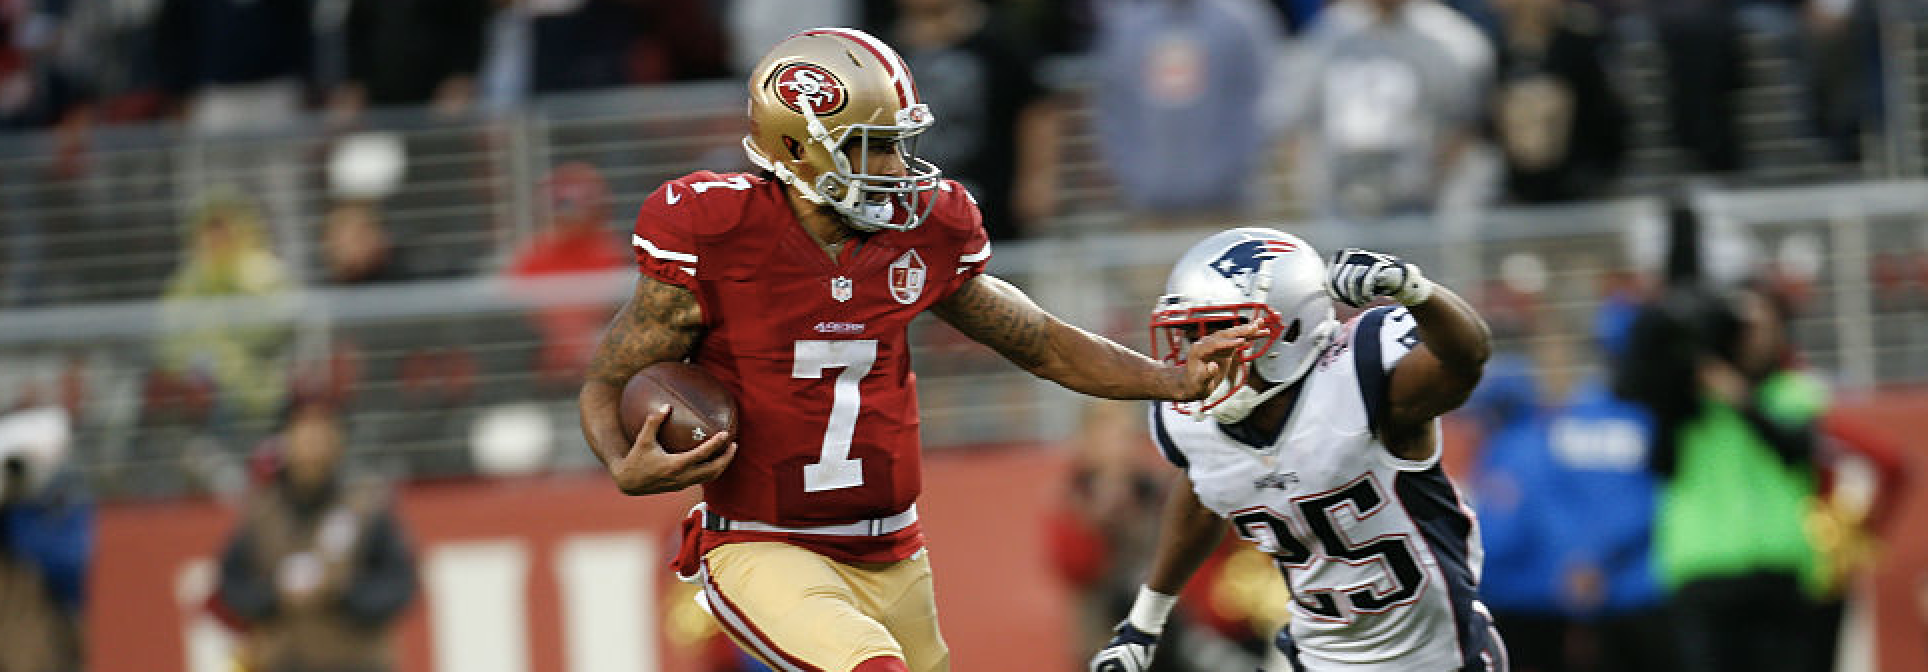 7 Reasons Colin Kaepernick Going to the Patriots Actually Makes Sense